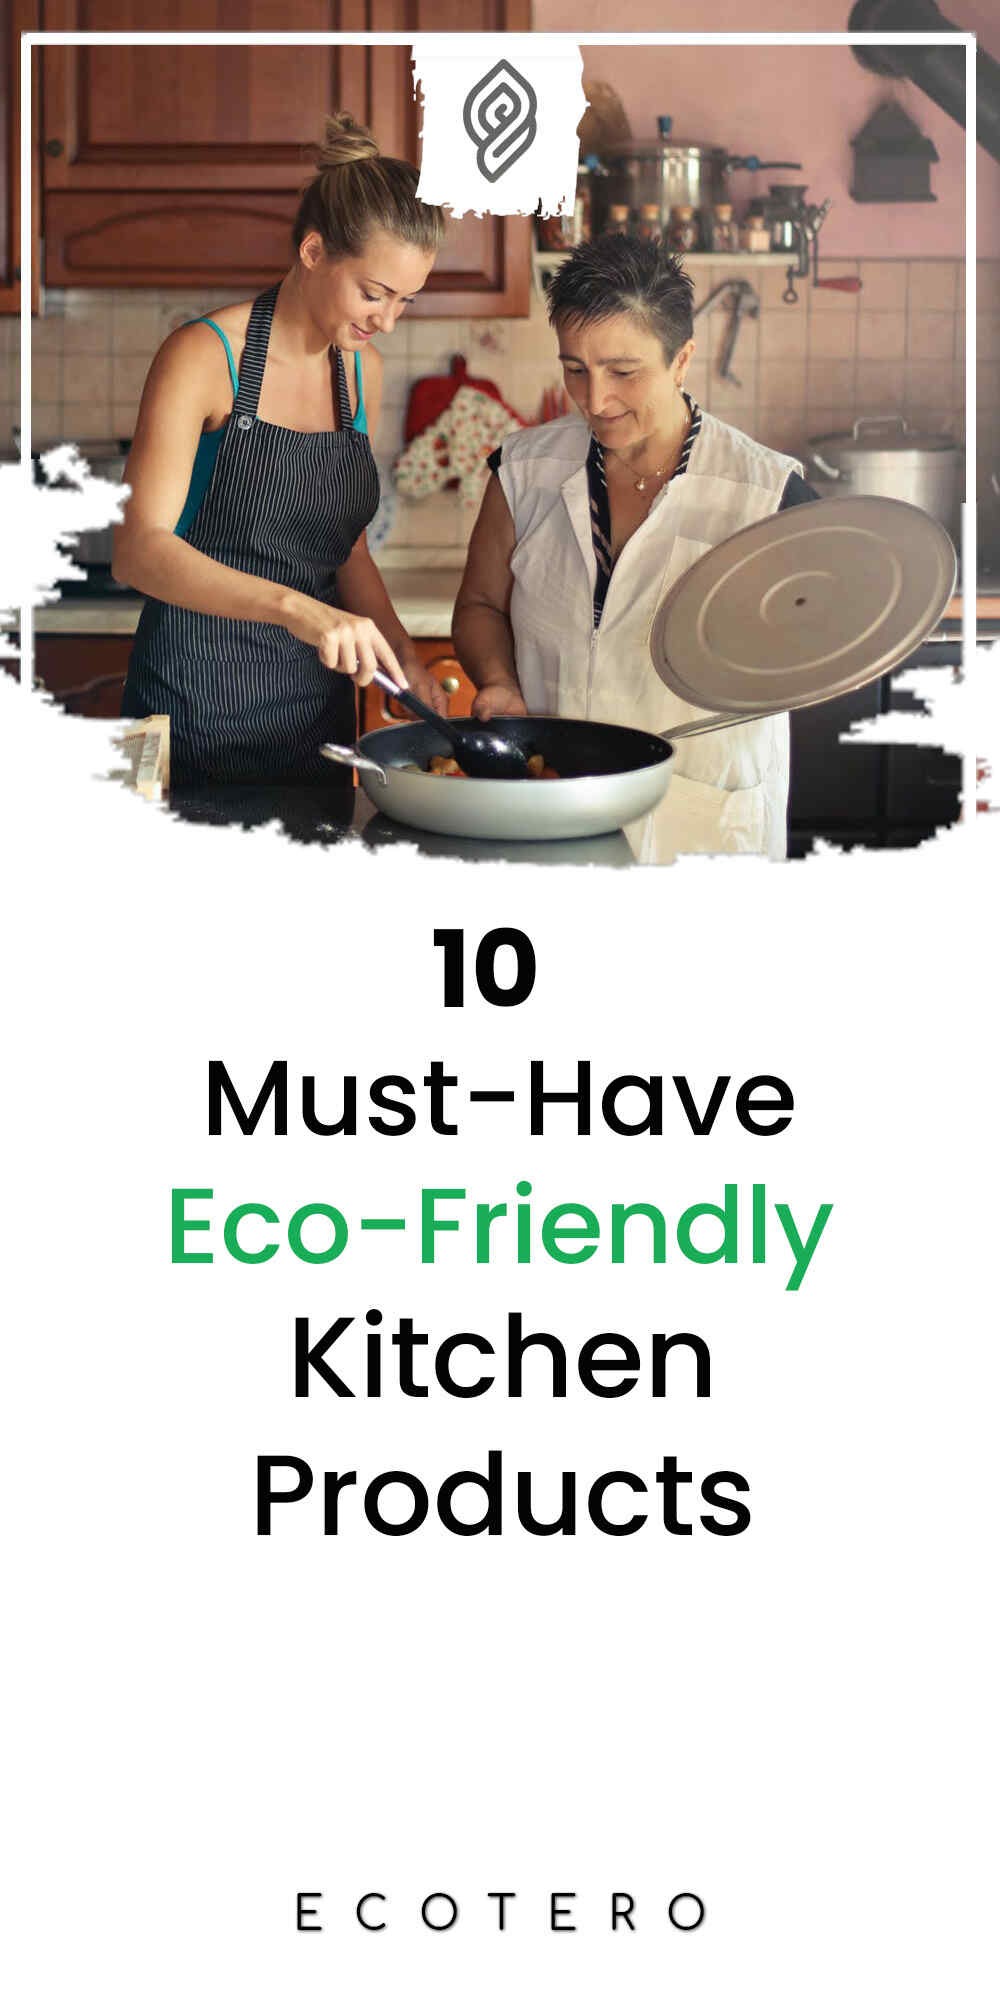 Eco-Friendly-Kitchen-Products